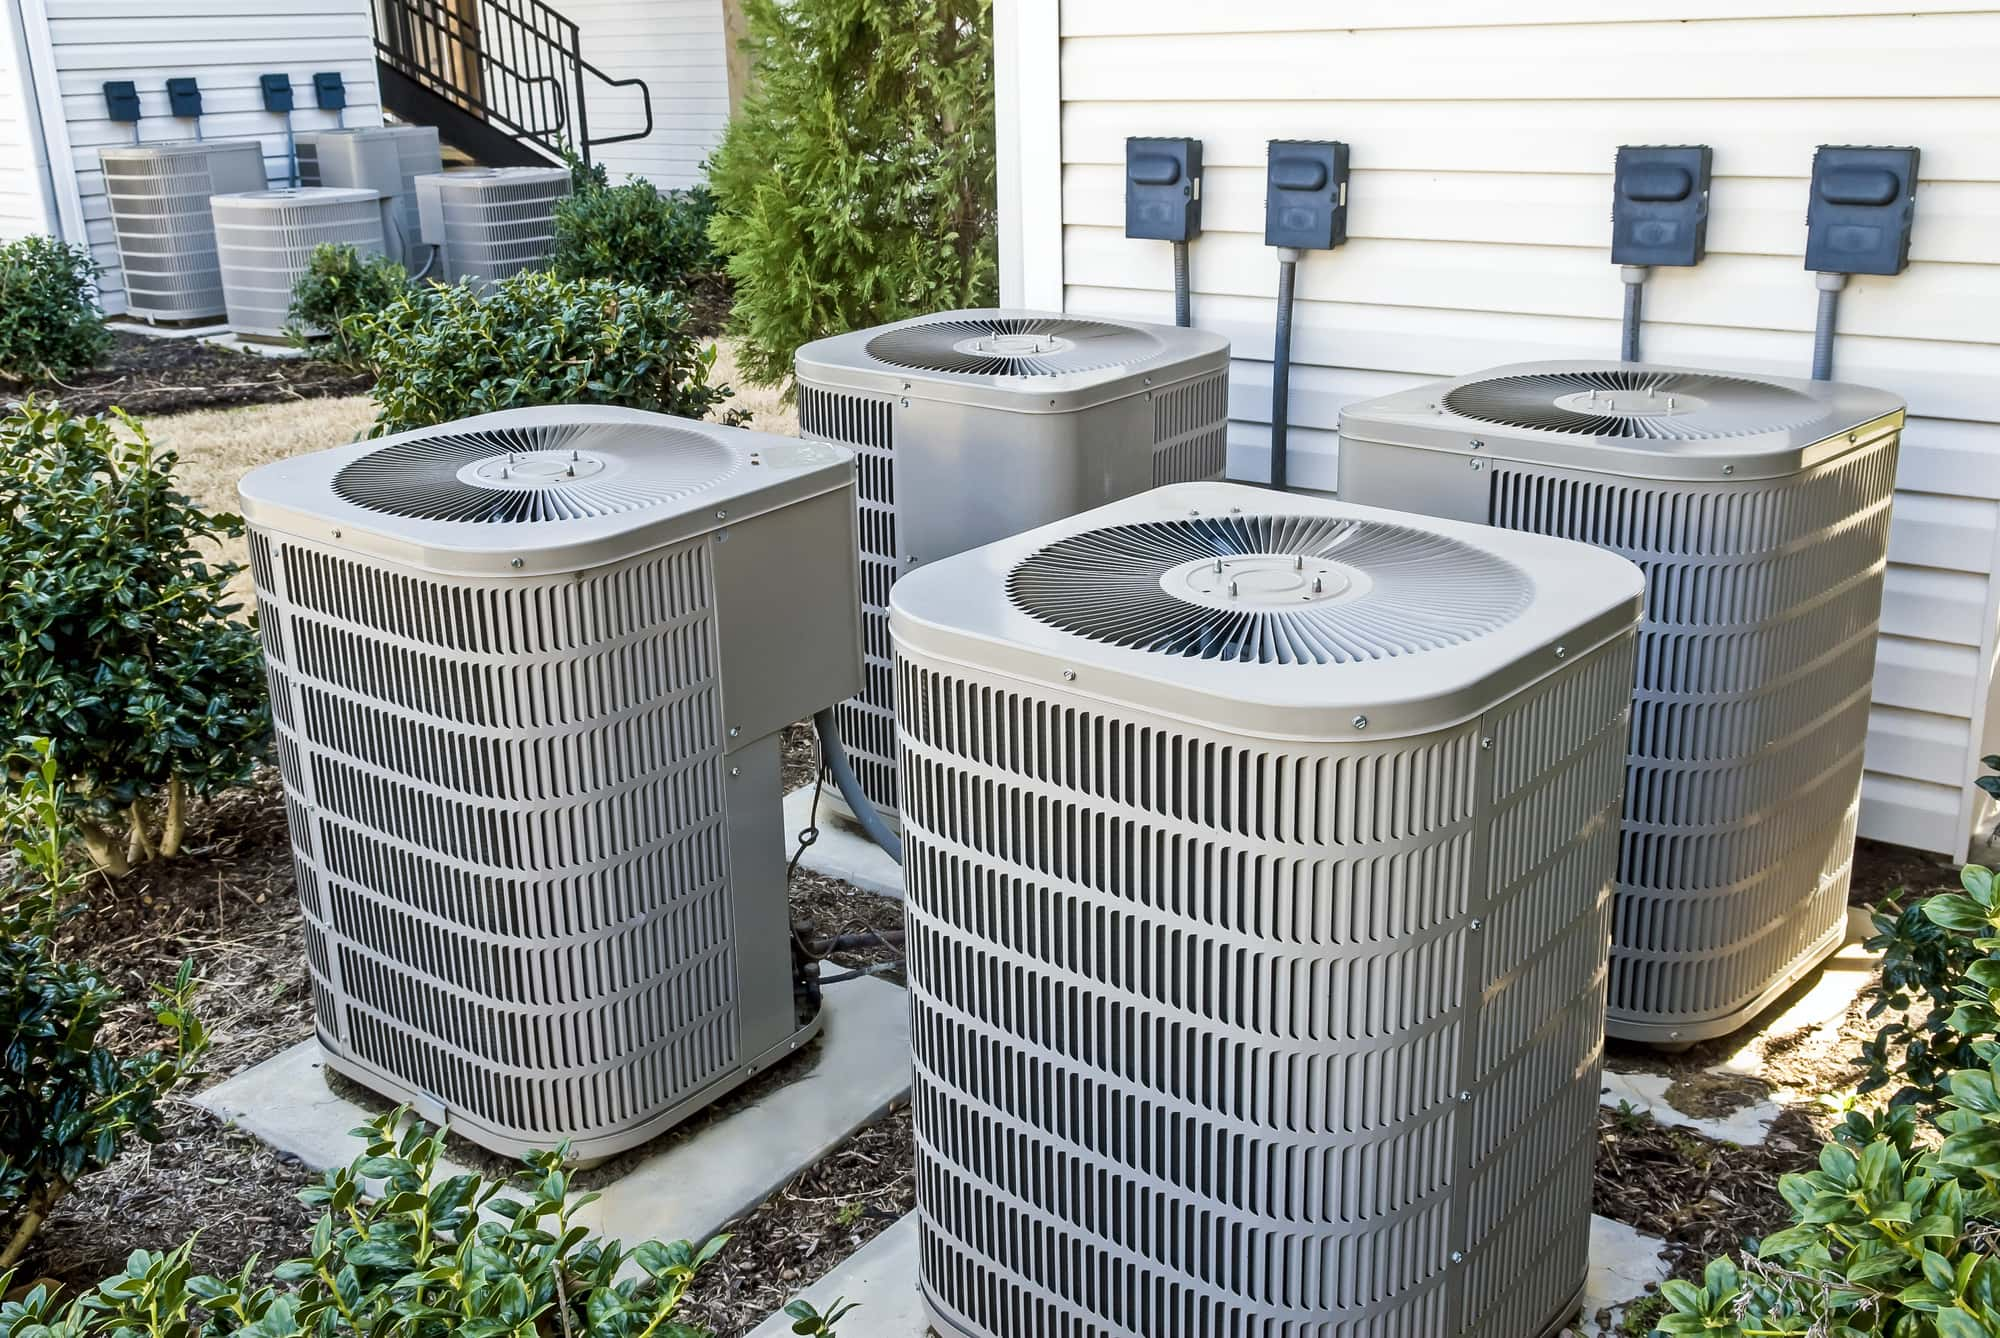 4 HVAC Warranty Must-Haves When You Make Your Purchase